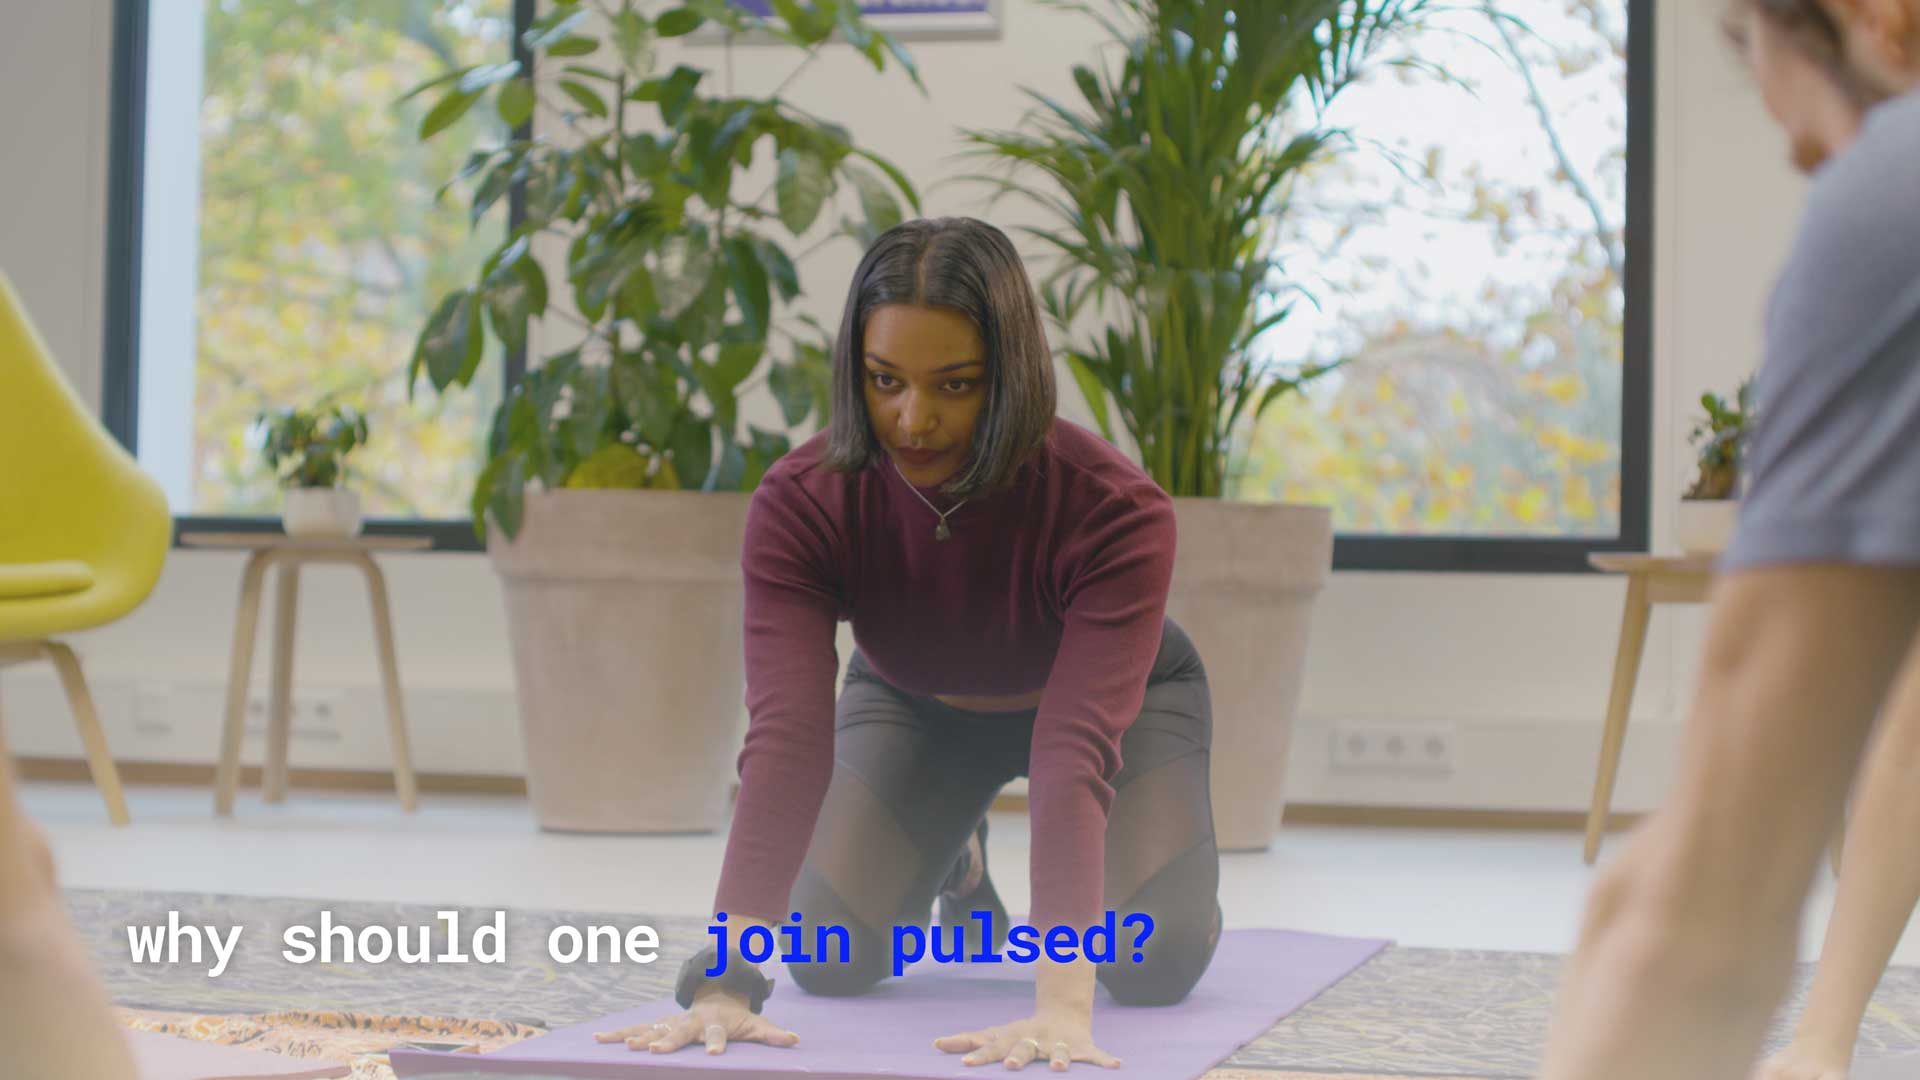 Vimeo video that answers the question of 'why should one join pulsed?'